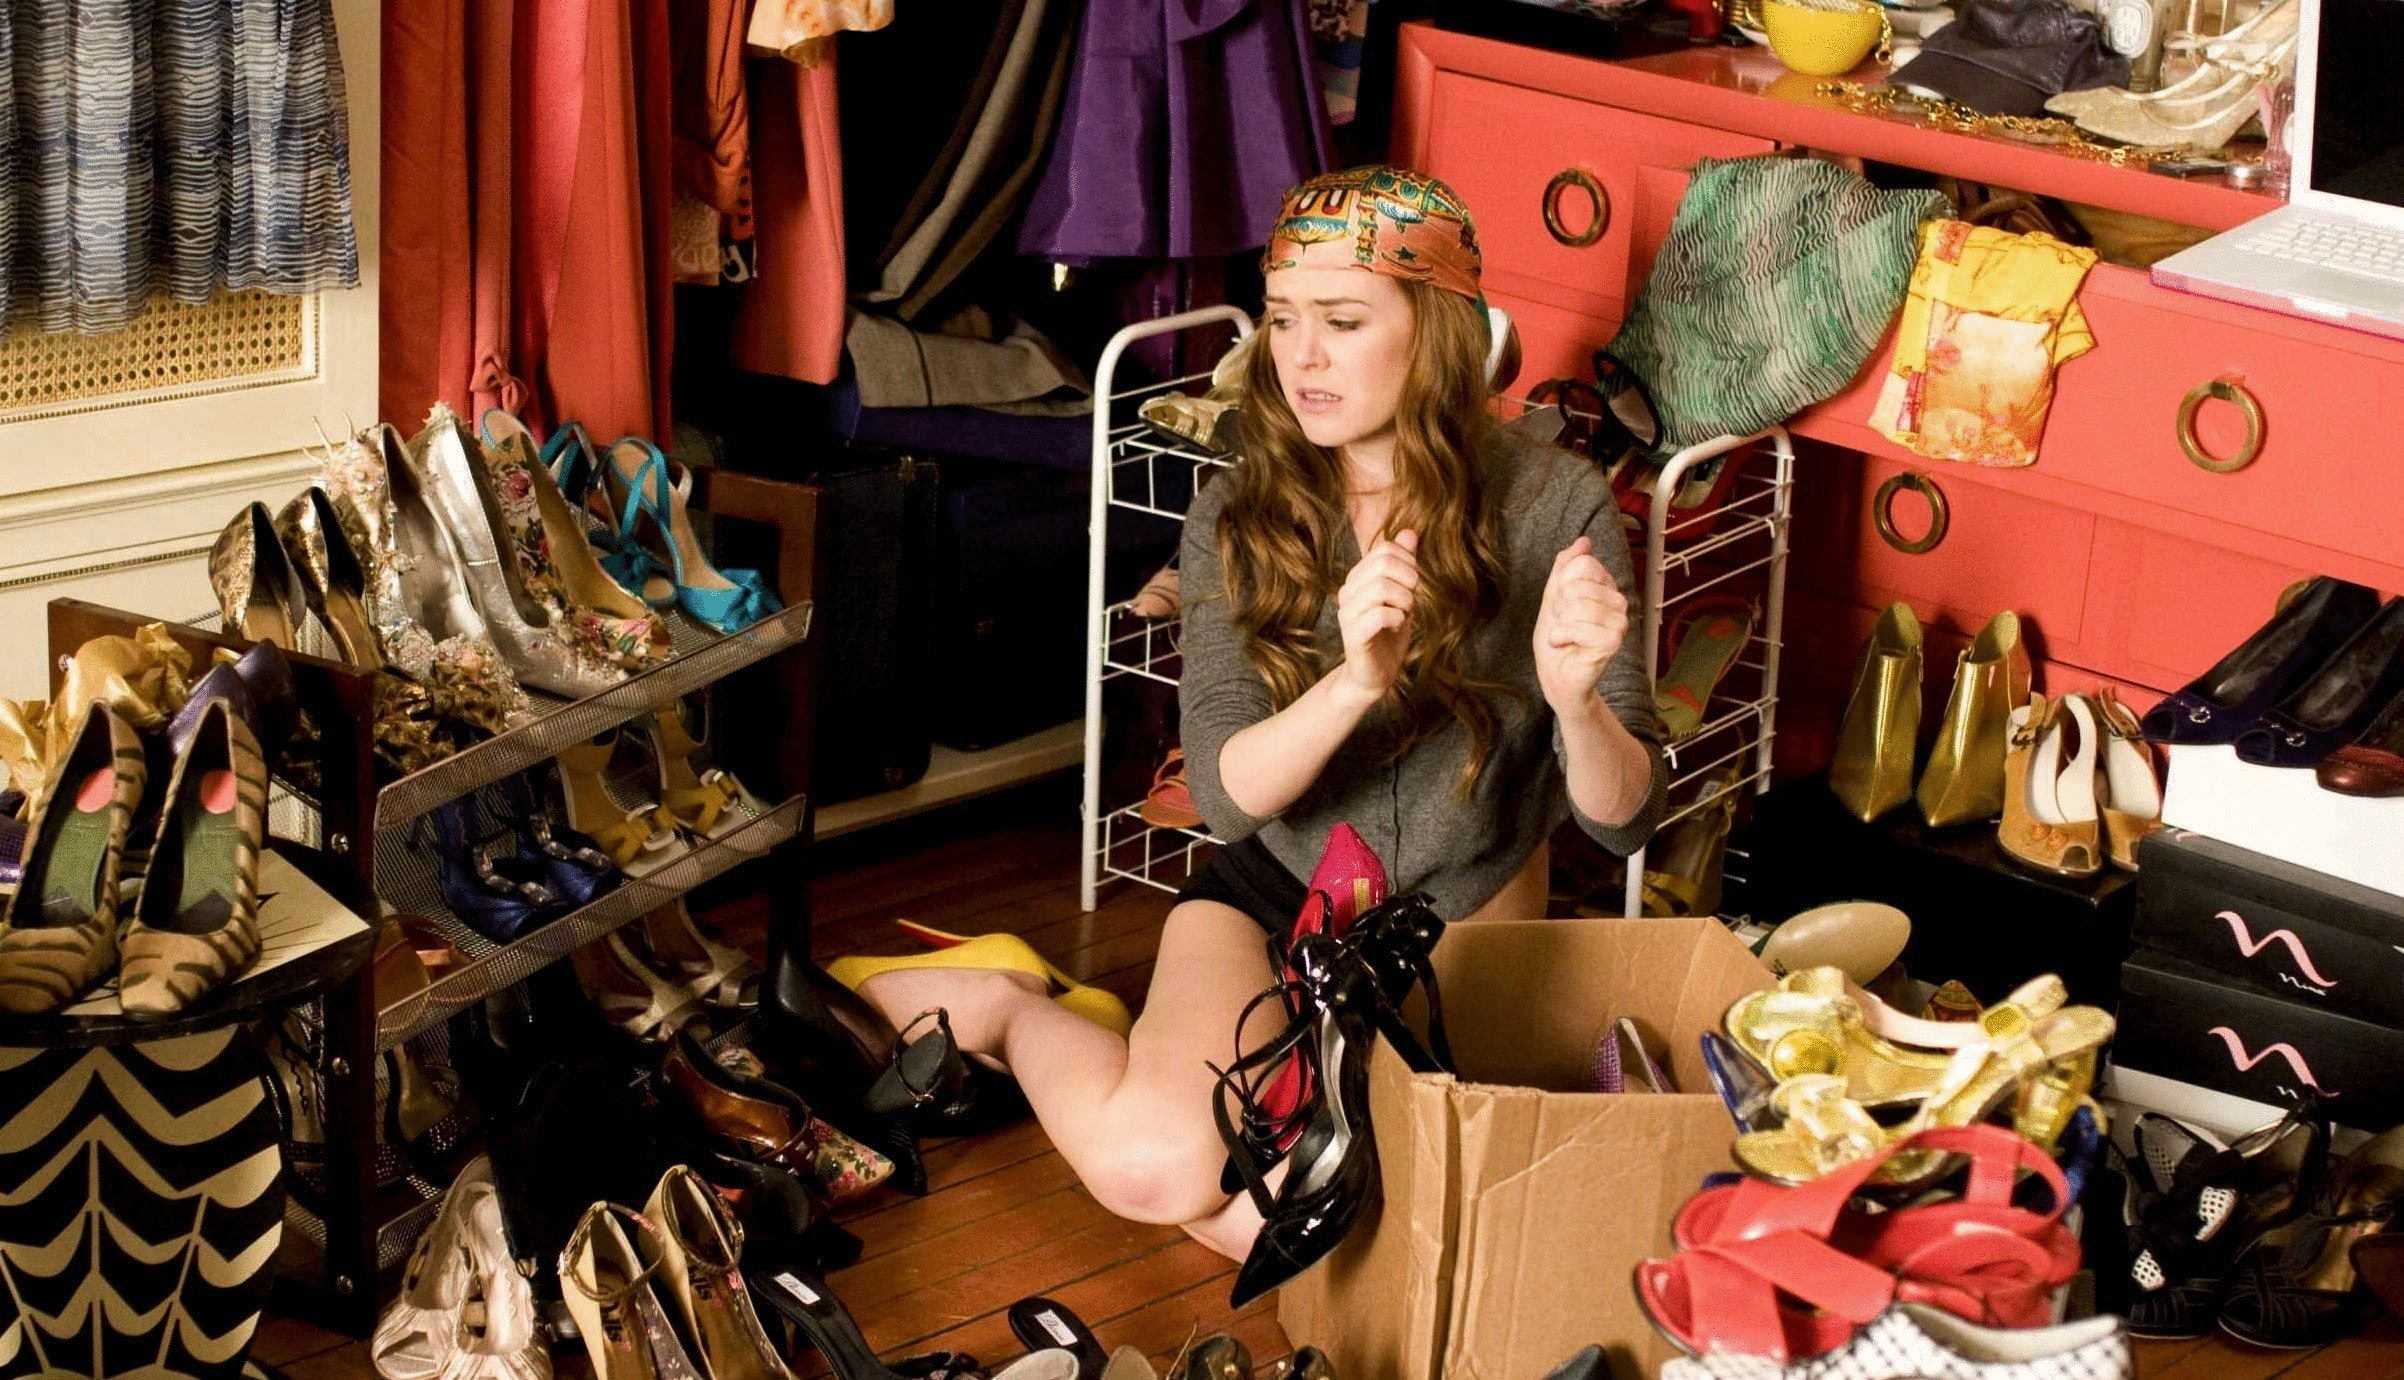 Why-shopping-makes-us-unhappy-02.jpg